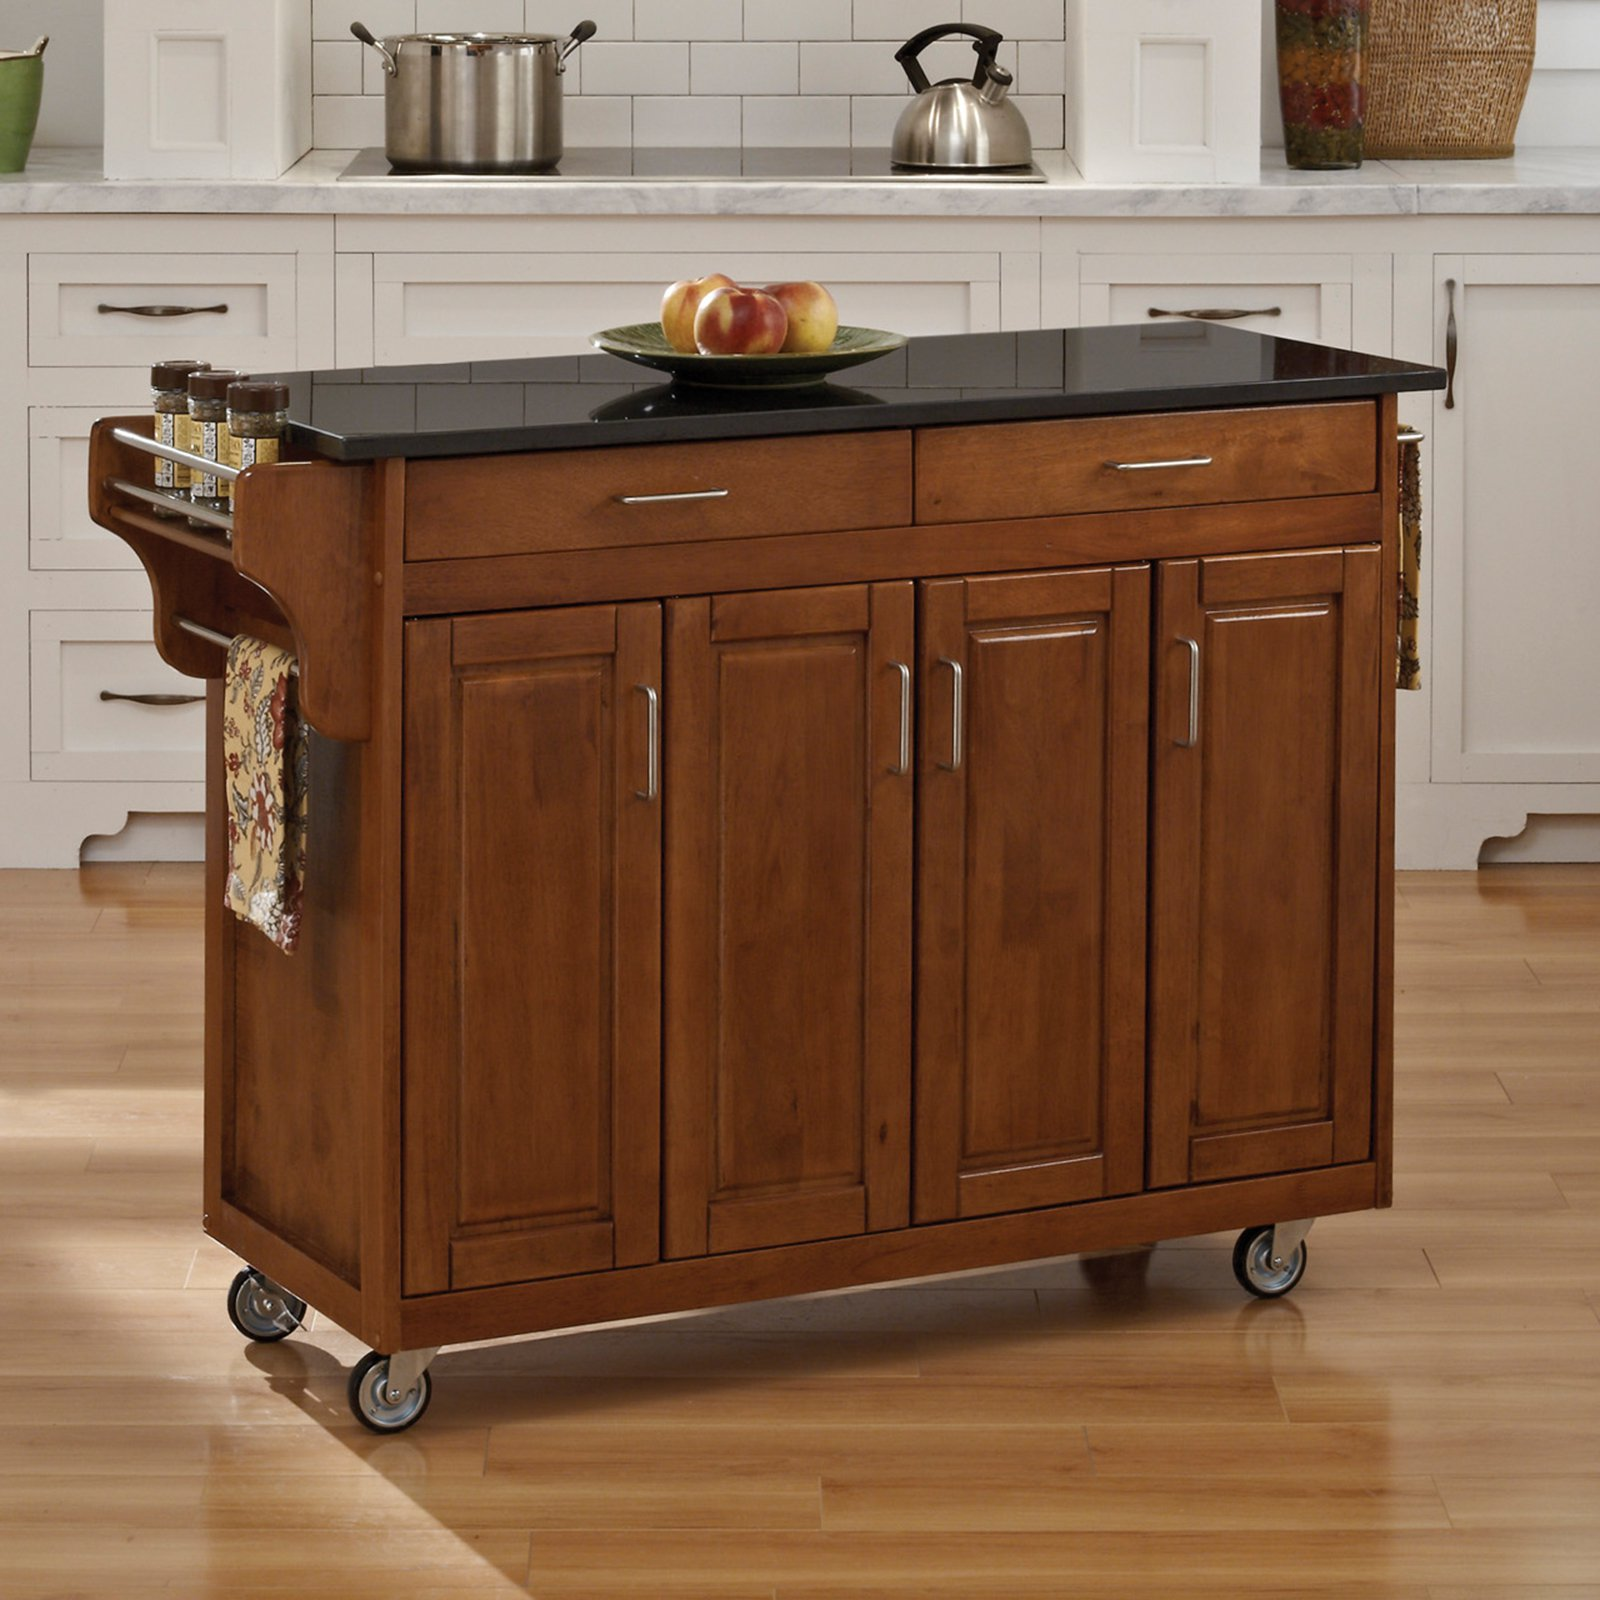 Excellent kitchen islands and carts home styles large create-a-cart kitchen island | hayneedle oetftsr